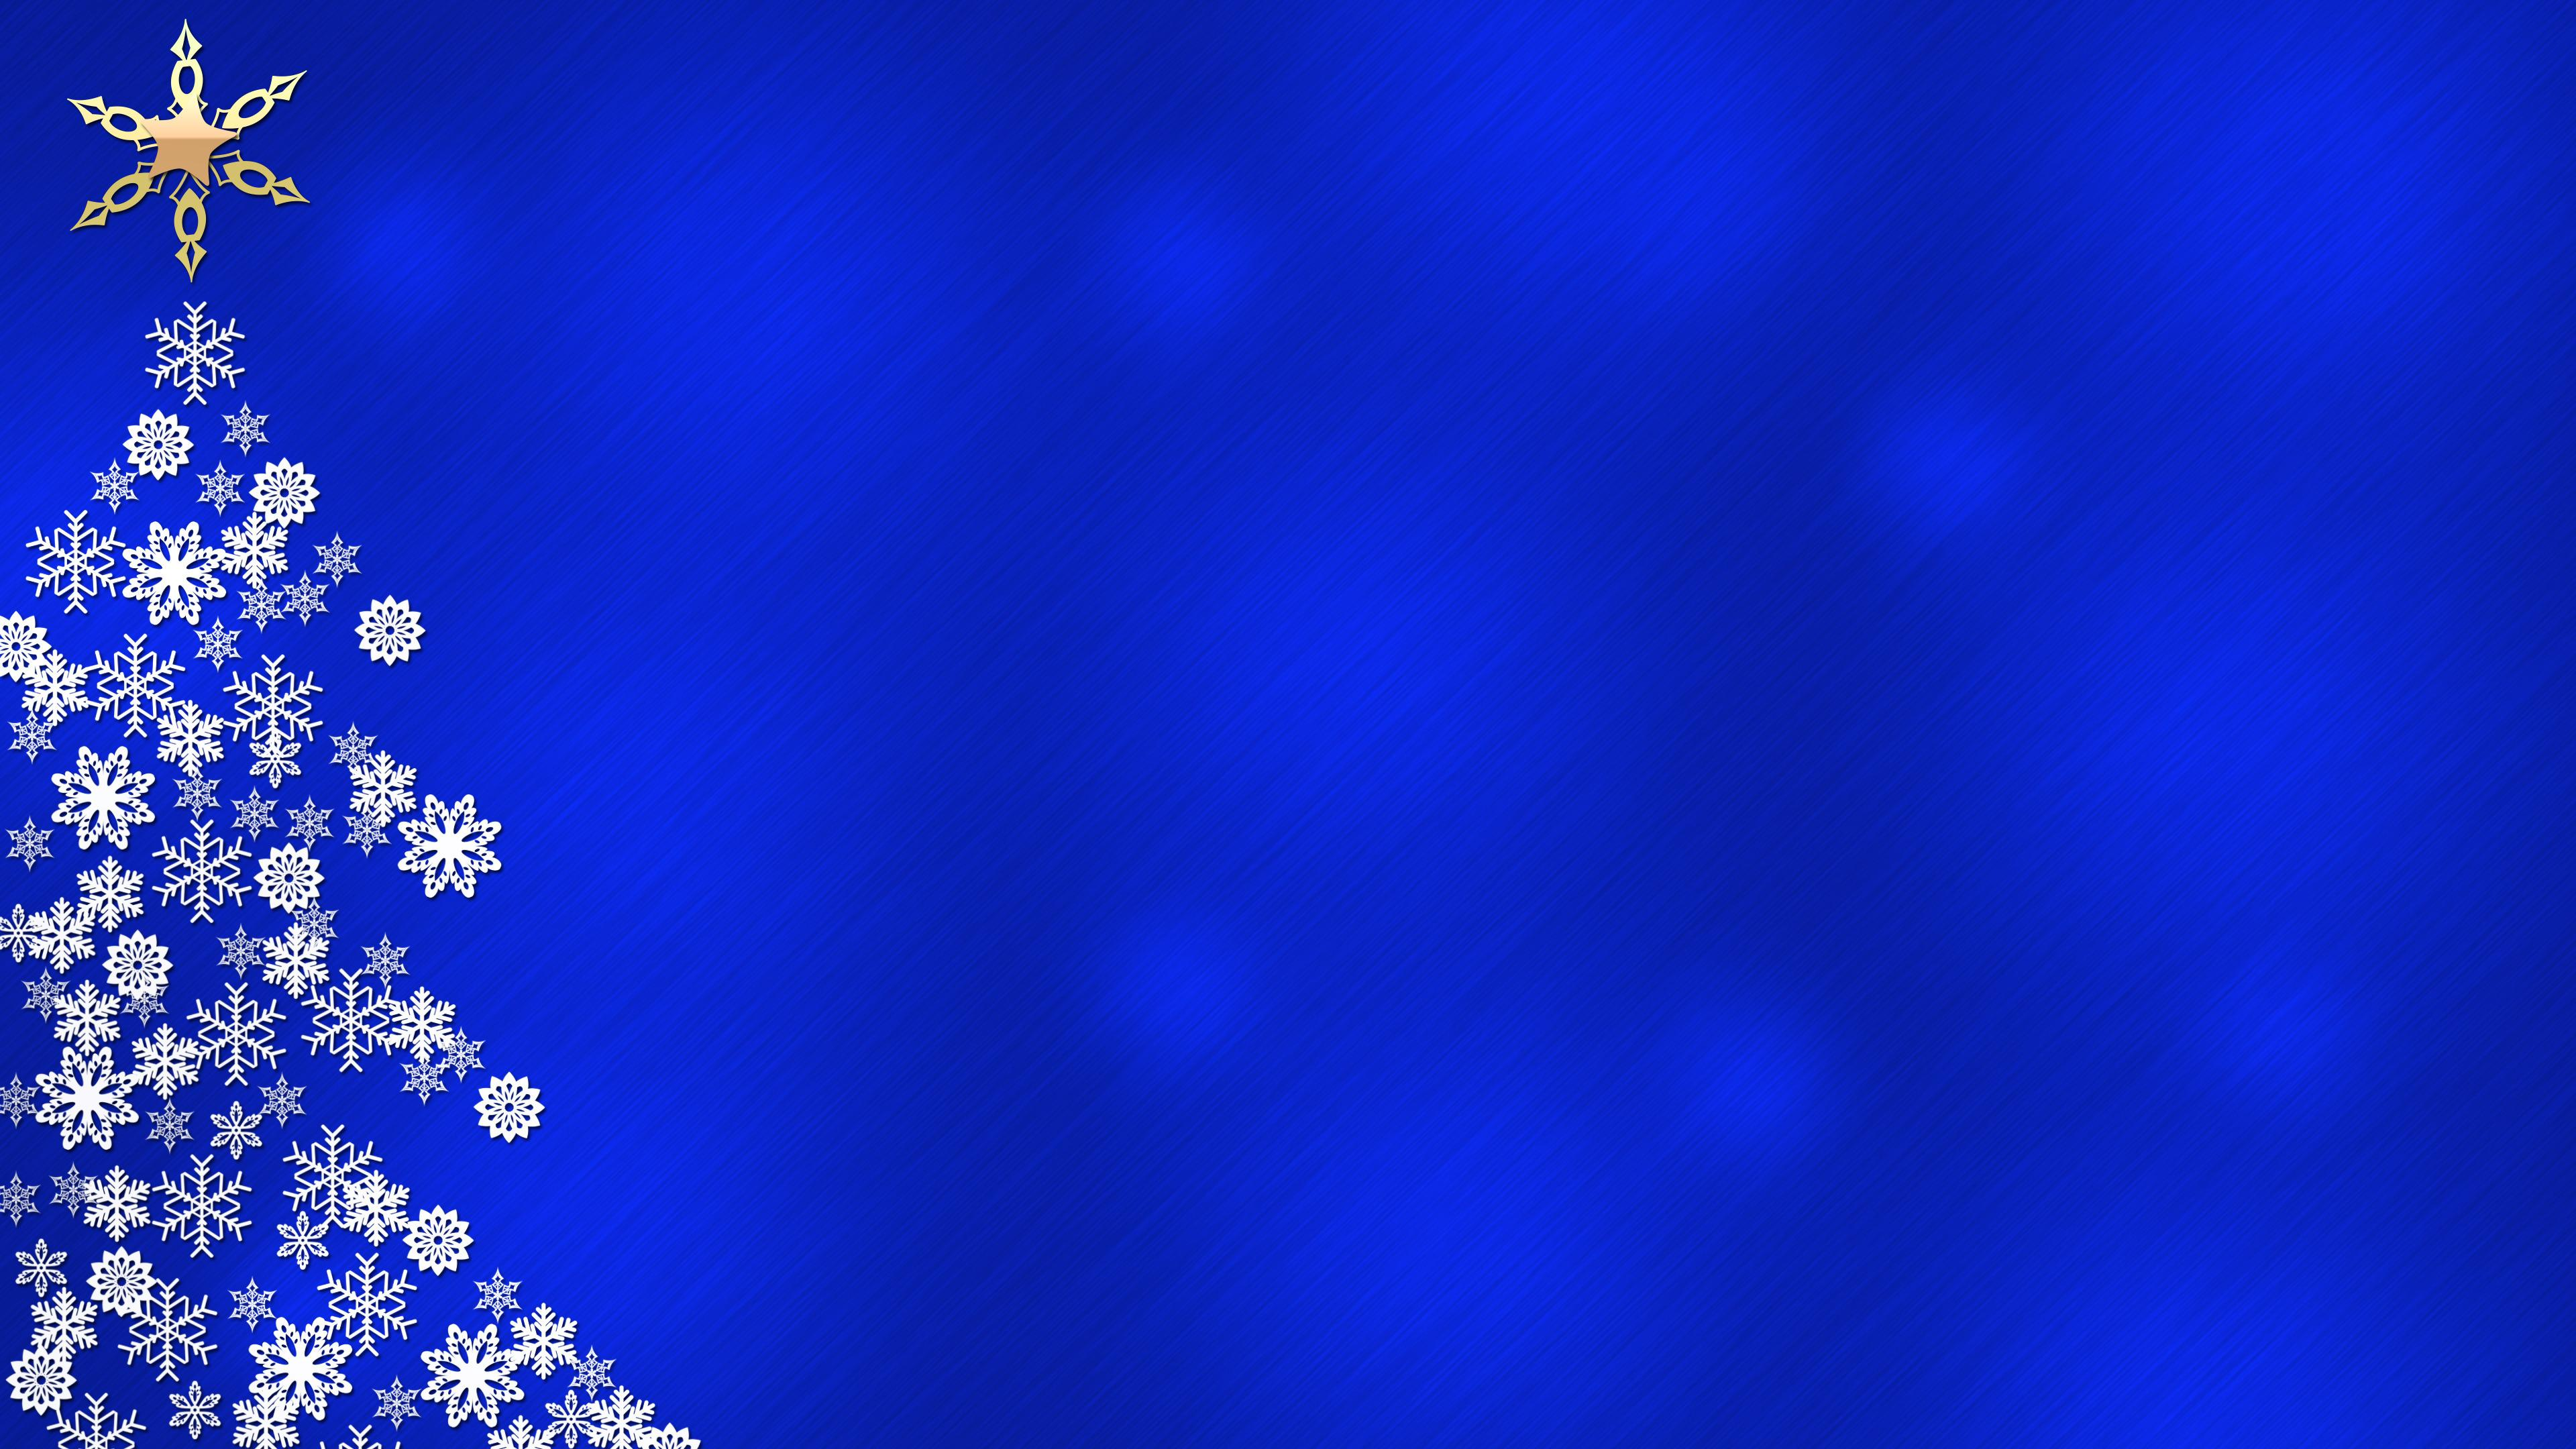 download wallpaper bluechristmas treeholidays - Christmas Tree Blue